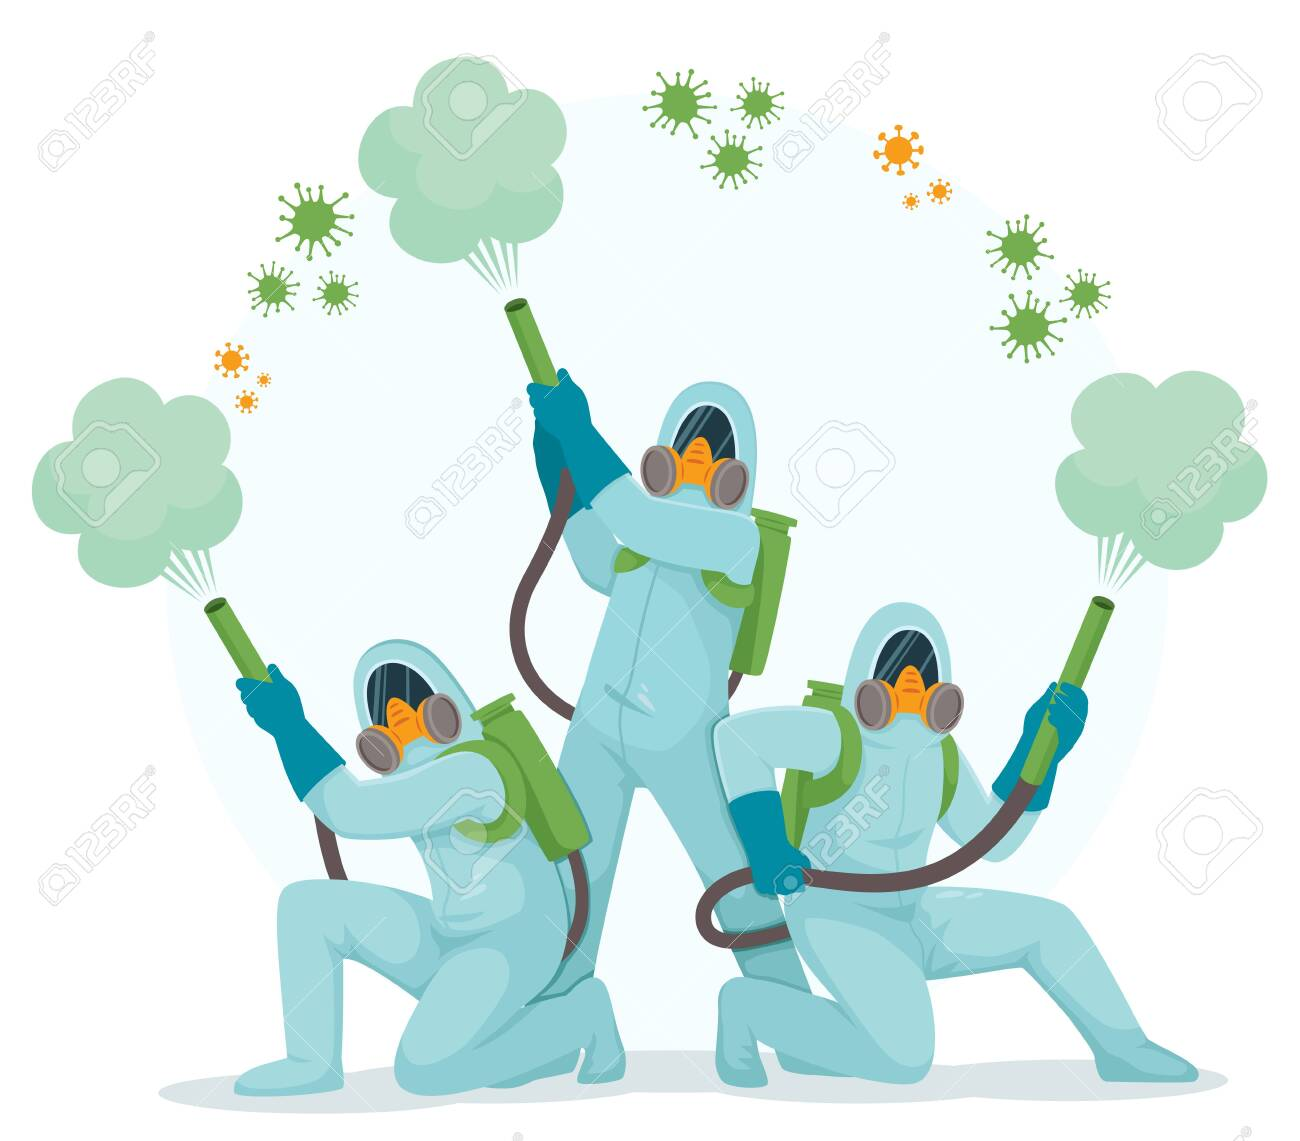 People in hazmat suits and protective masks standing in superheroes pose and spraying disinfecting gas to kill viruses. - 143513820